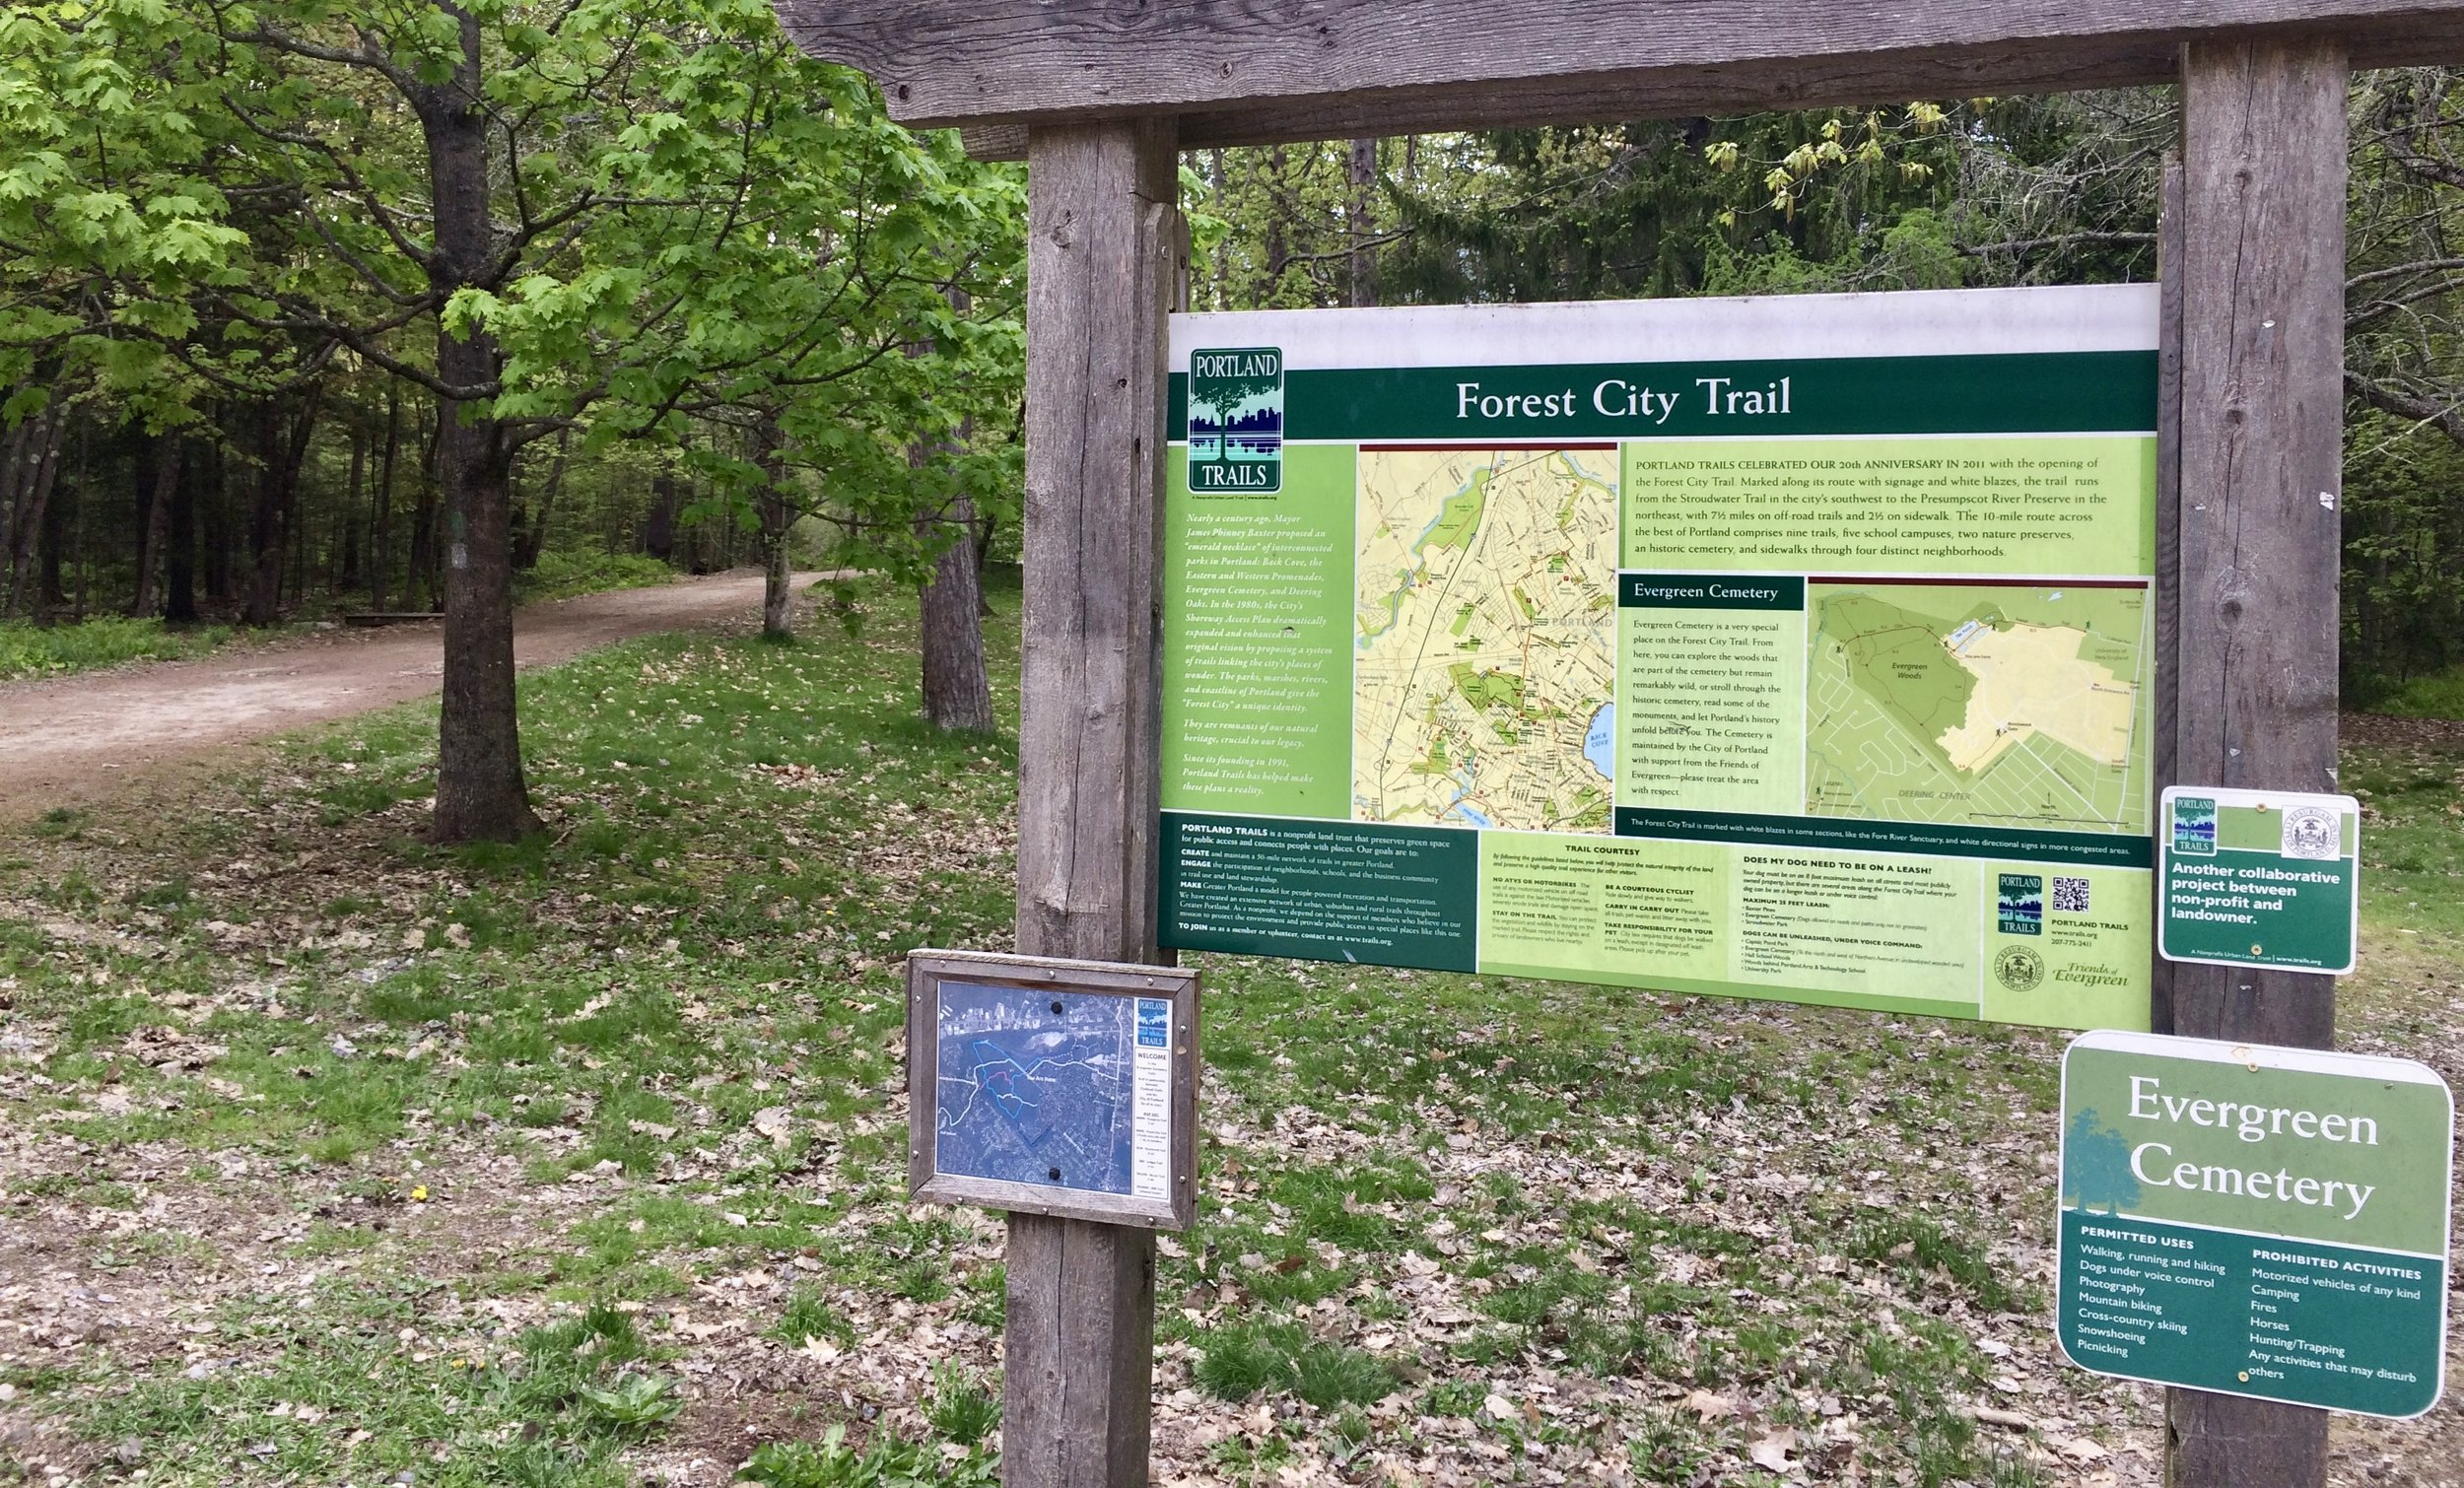 Forest City Trail - In the back of Evergreen Cemetery, this portion of the City-wide trail provides mixed terrain hiking and biking.